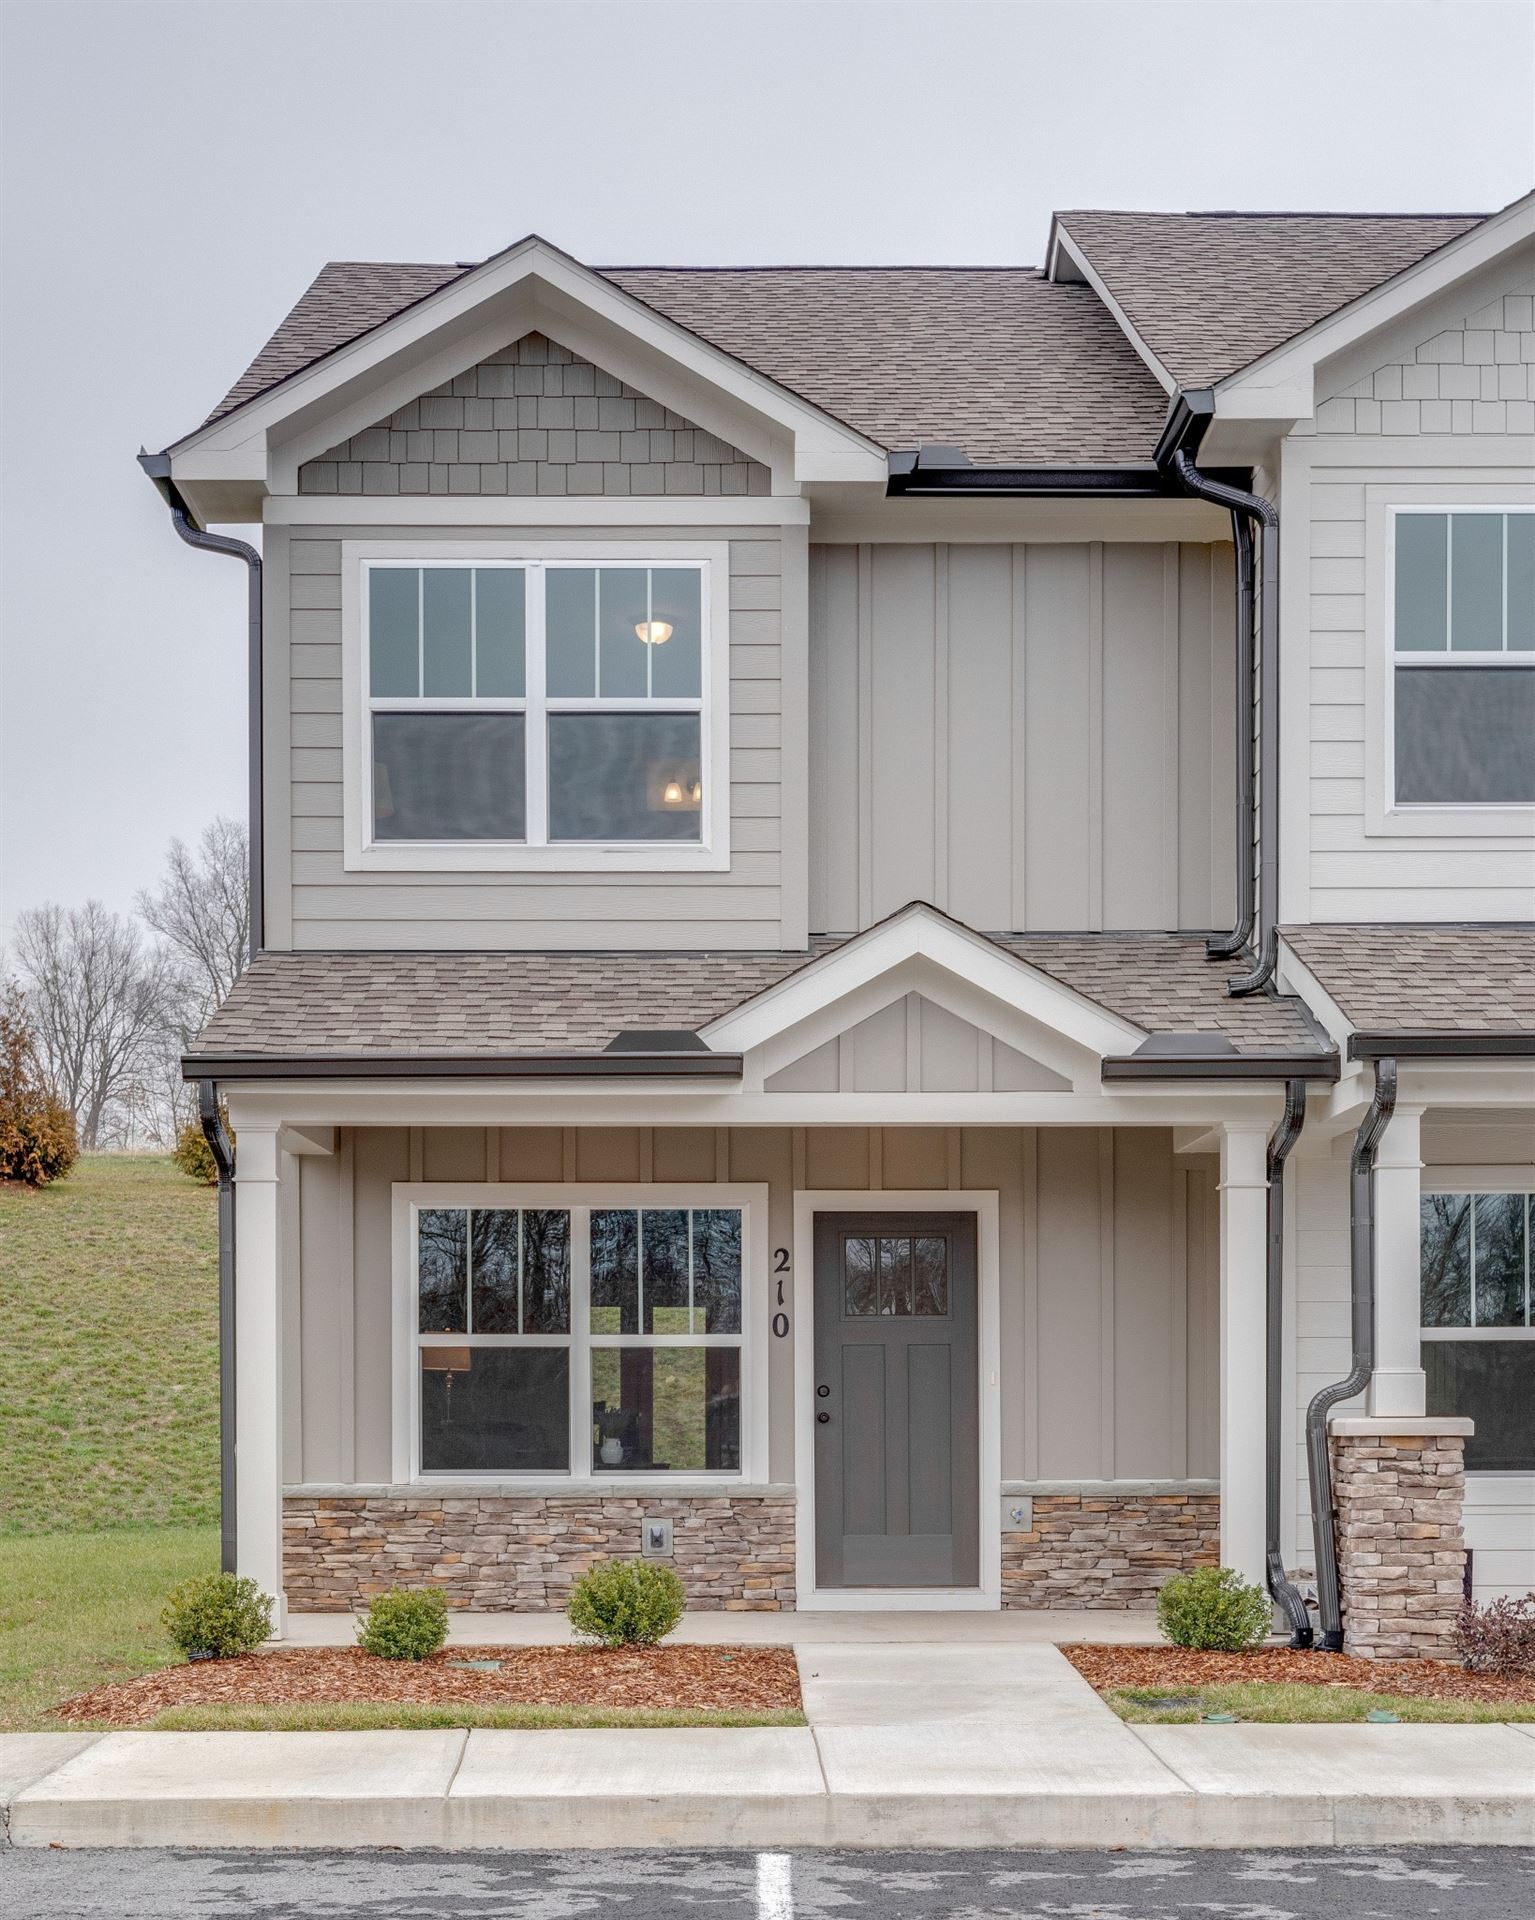 503 Bell Forge Ct, White Bluff, TN 37187 - MLS#: 2164837